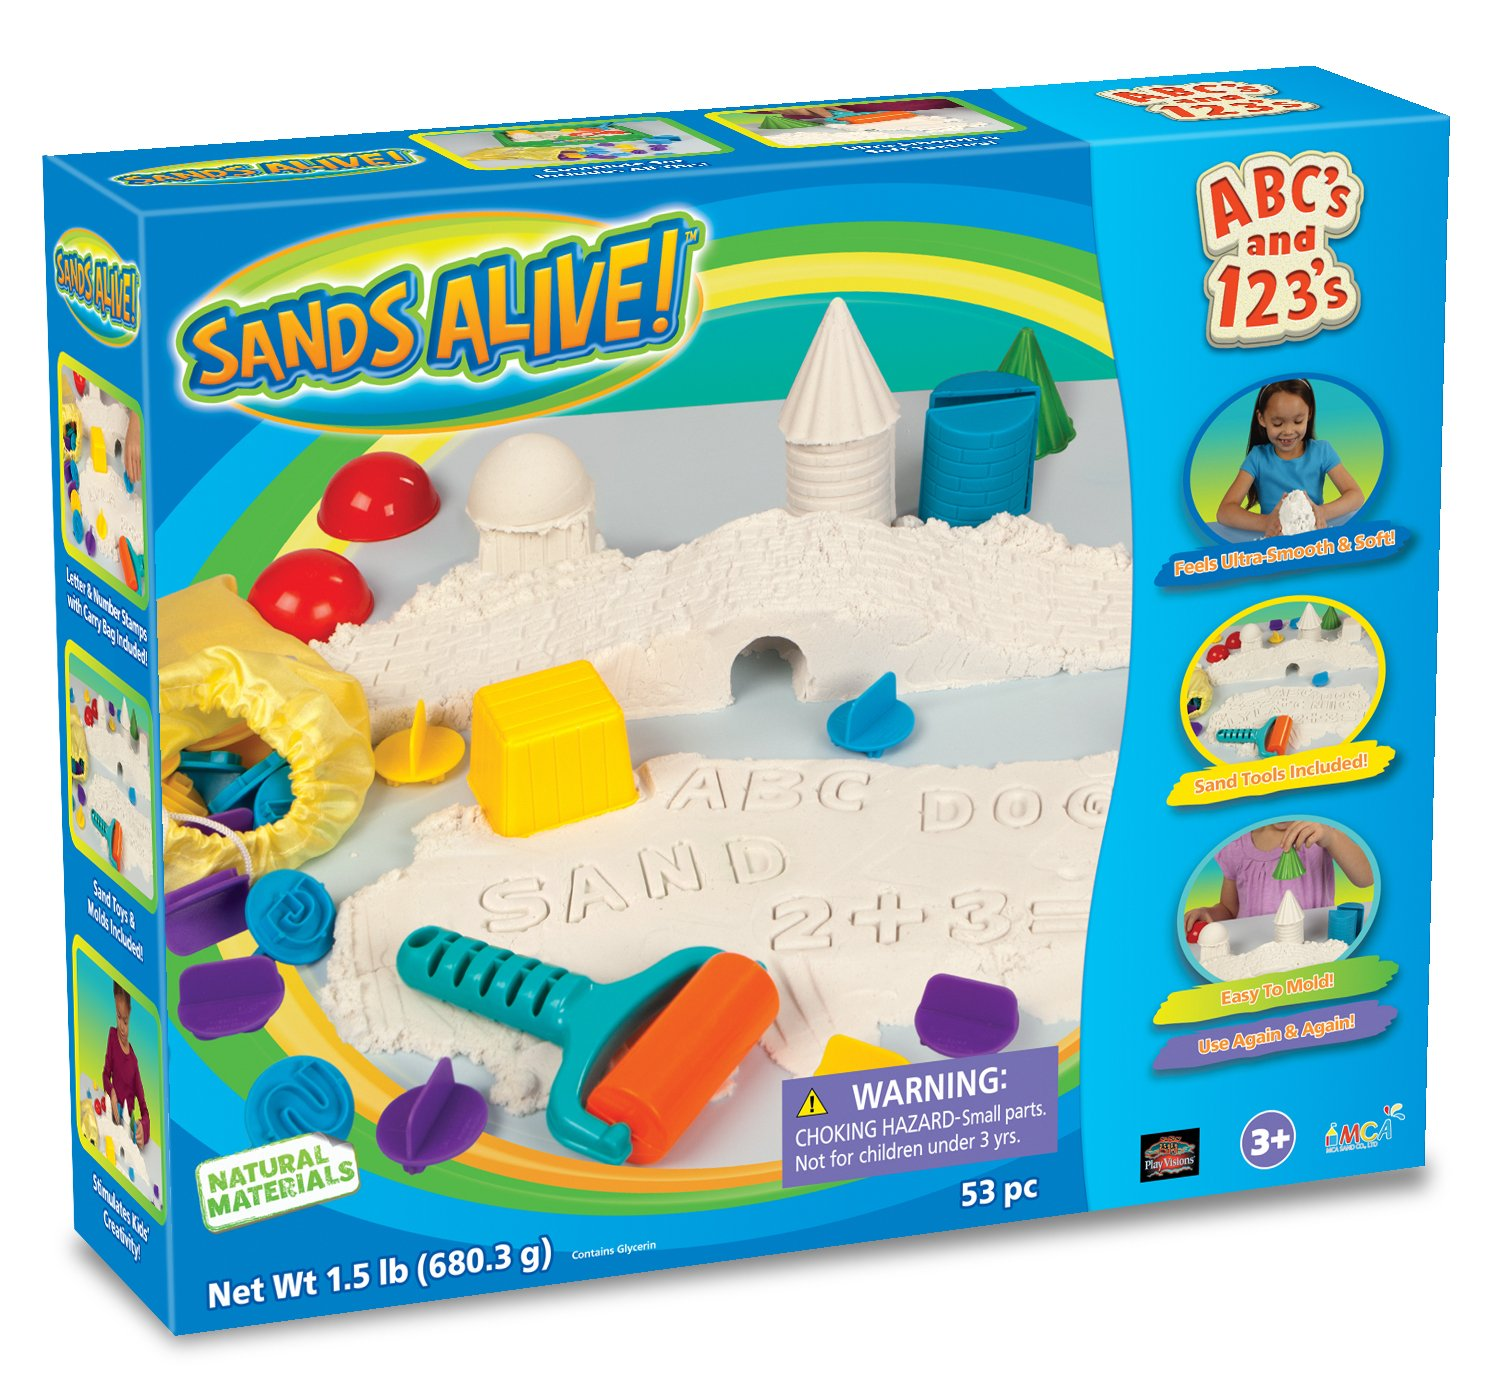 Play Visions Sands Alive! ABC's & 123's by Play Visions Getting Fit 2533